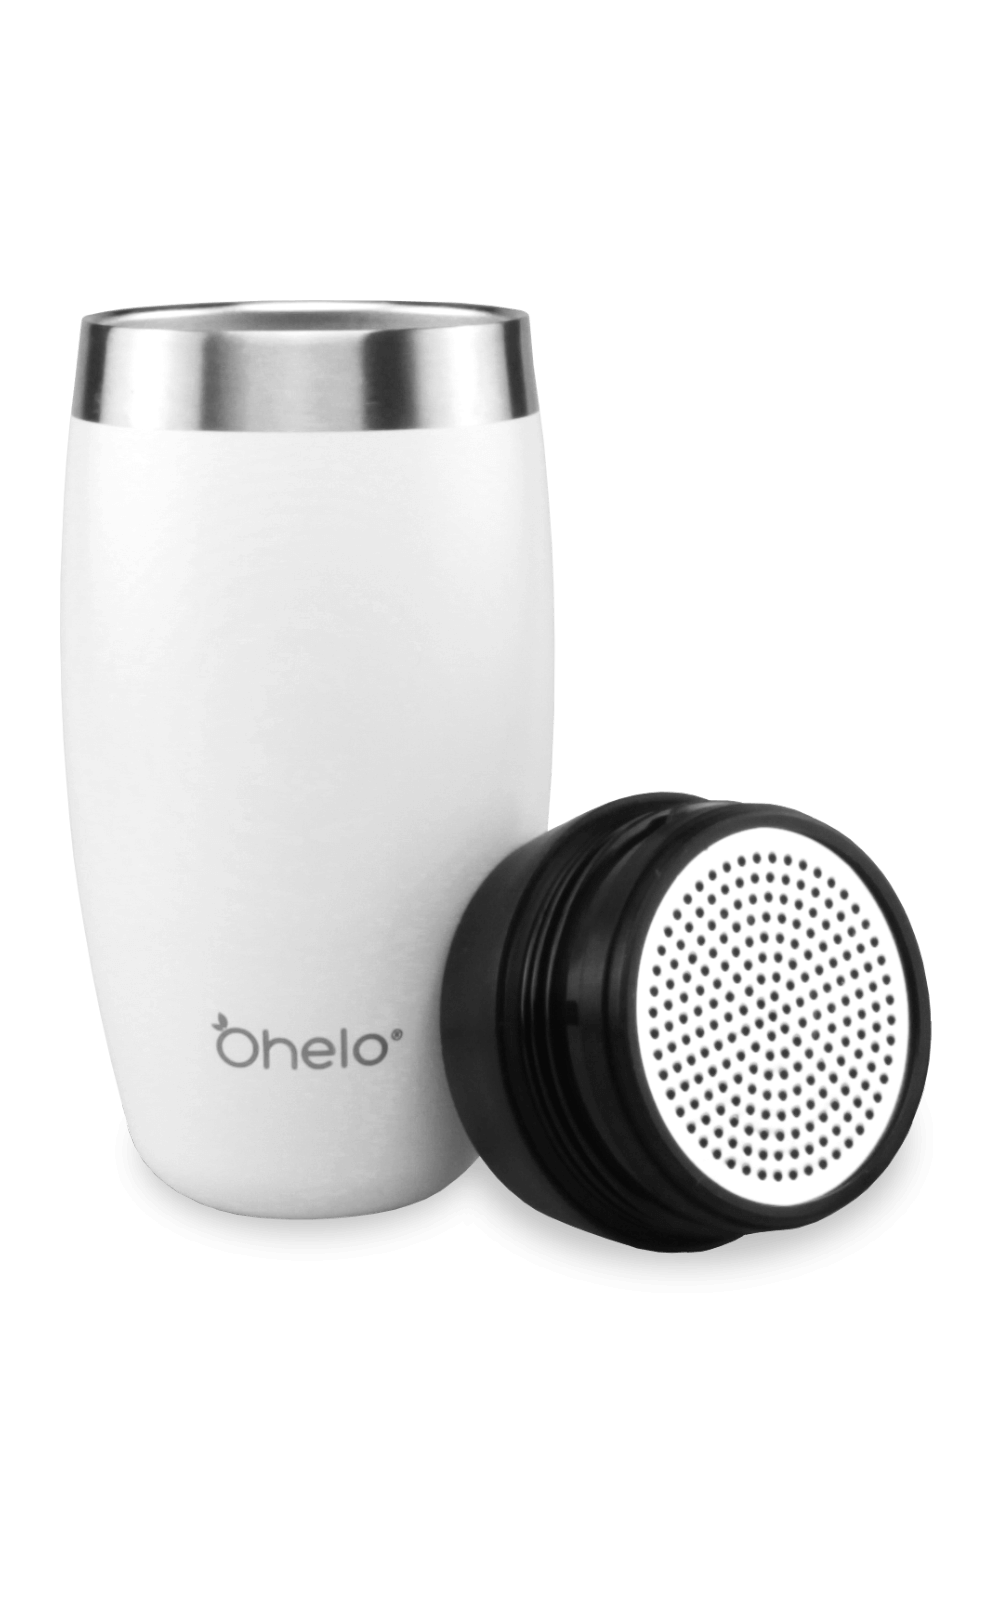 Ohelo reusable coffee cup with lid